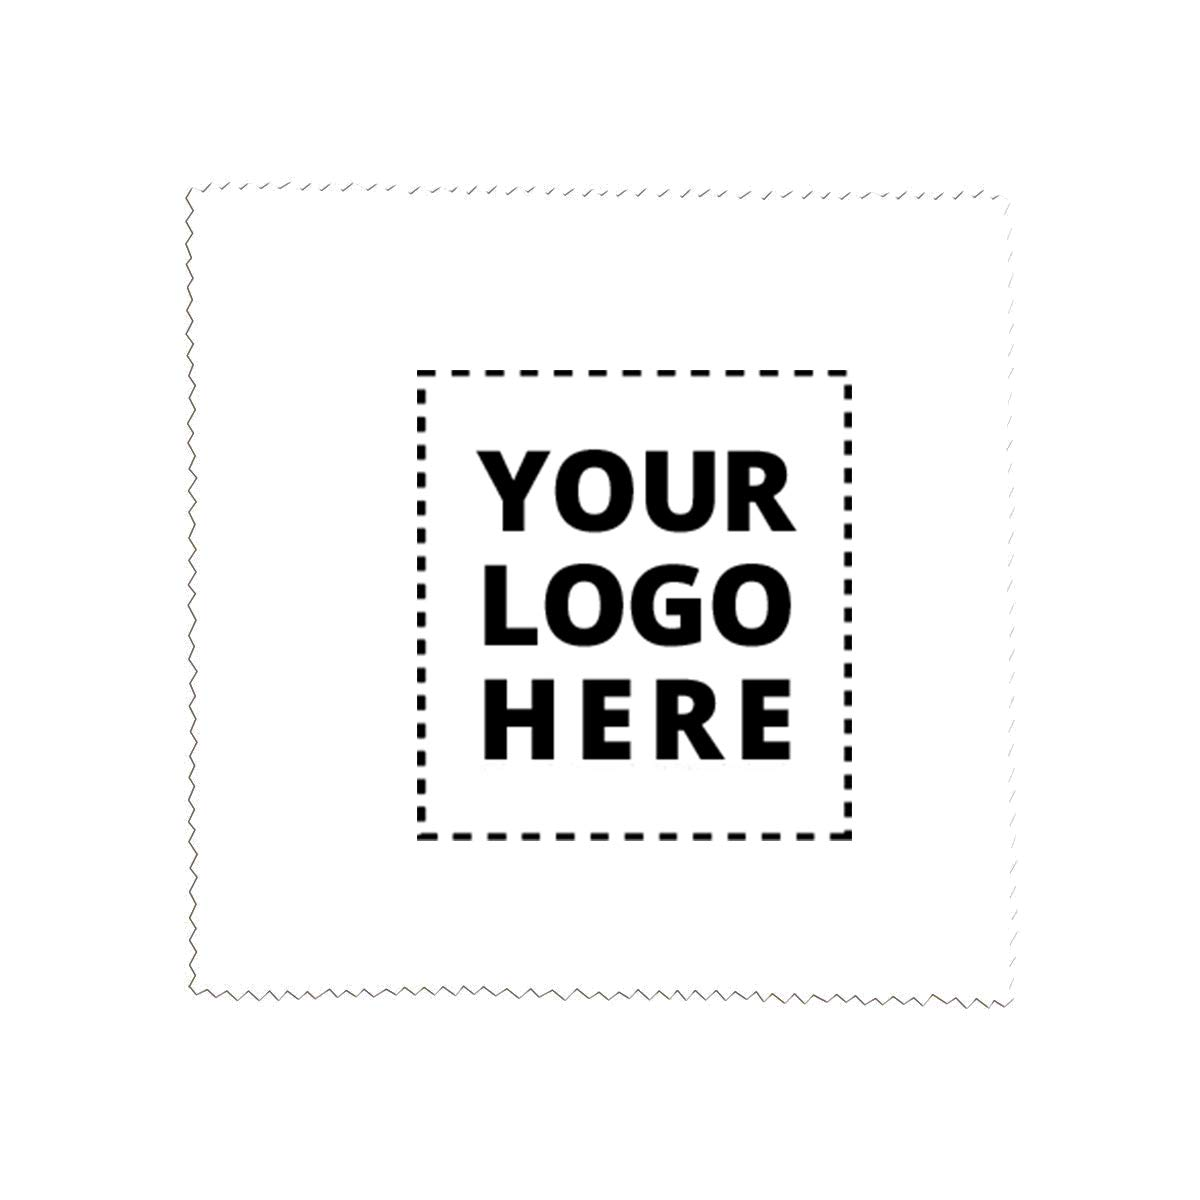 Microfiber Cleaning Cloths - 6'' x 6'' - 250 Qty - 1.78 Each - Promotional Product Imprinted & Personalized Bulk with Your Custom Logo White by Promo Direct